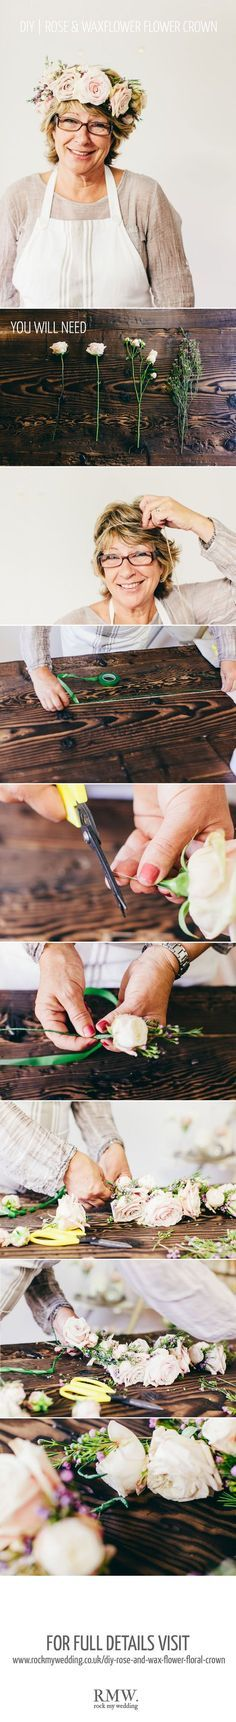 A Floral DIY Tutorial Showing You How To Create A Floral Crown Using Roses And Wax Flowers For Your Wedding, via @rockmywedding